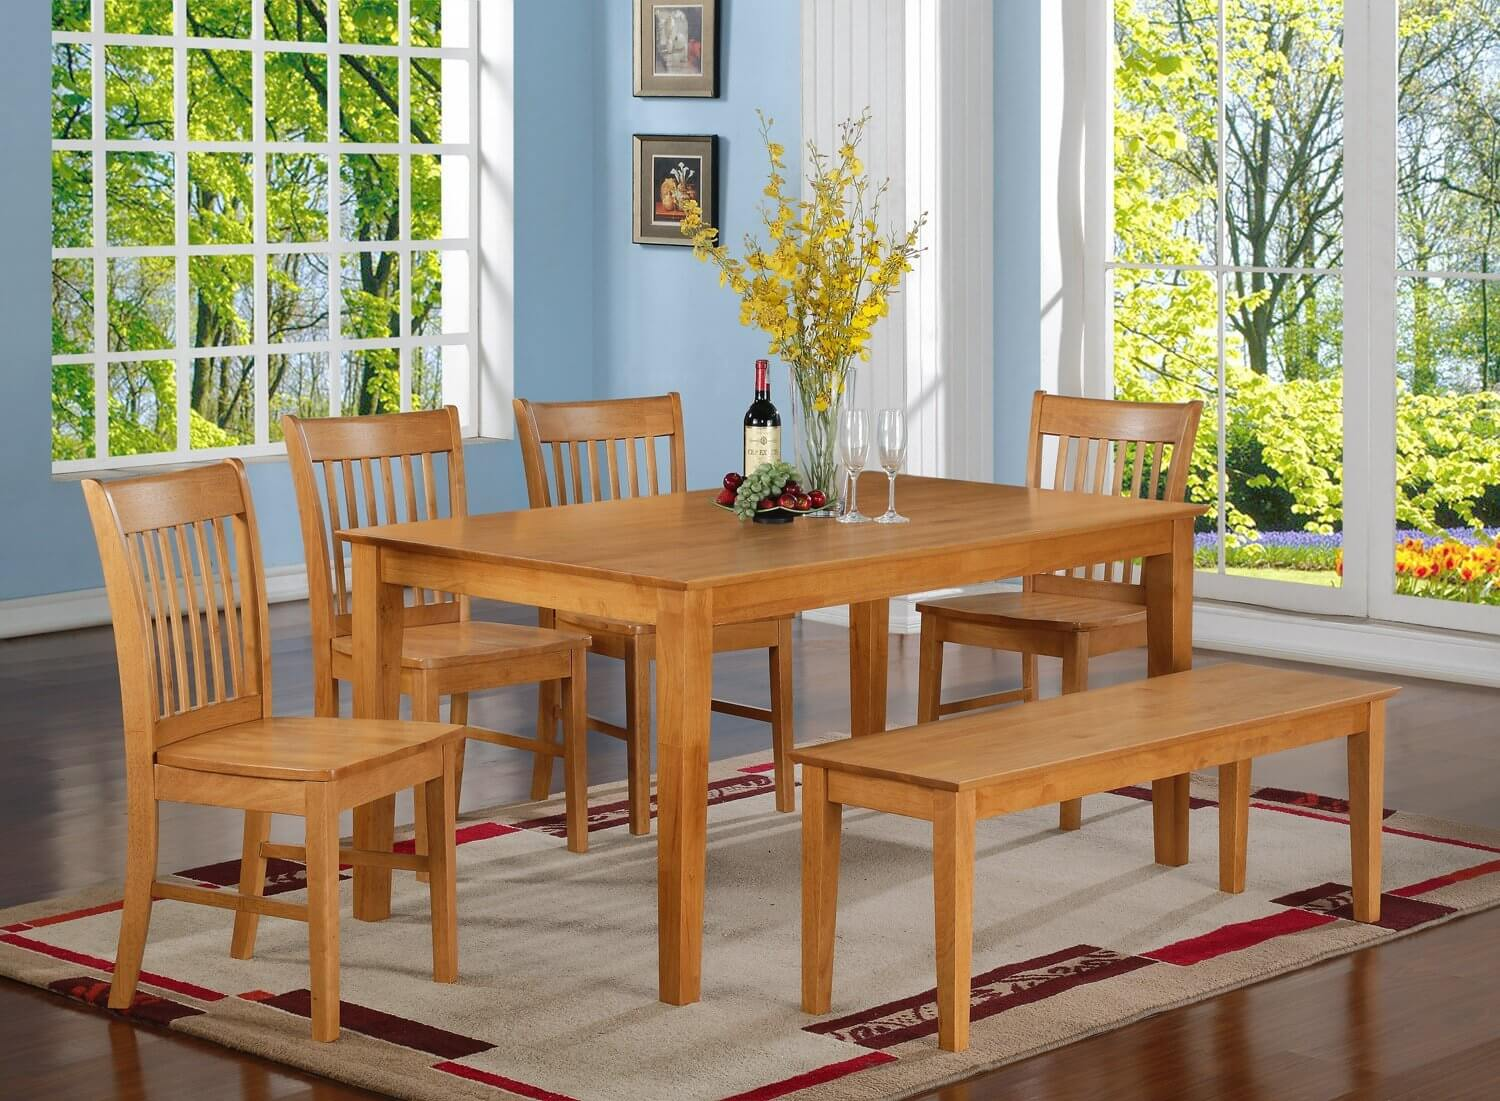 oak finish six piece bench style dining room set with large rectangle table its - Dining Room Table With Chairs And Bench